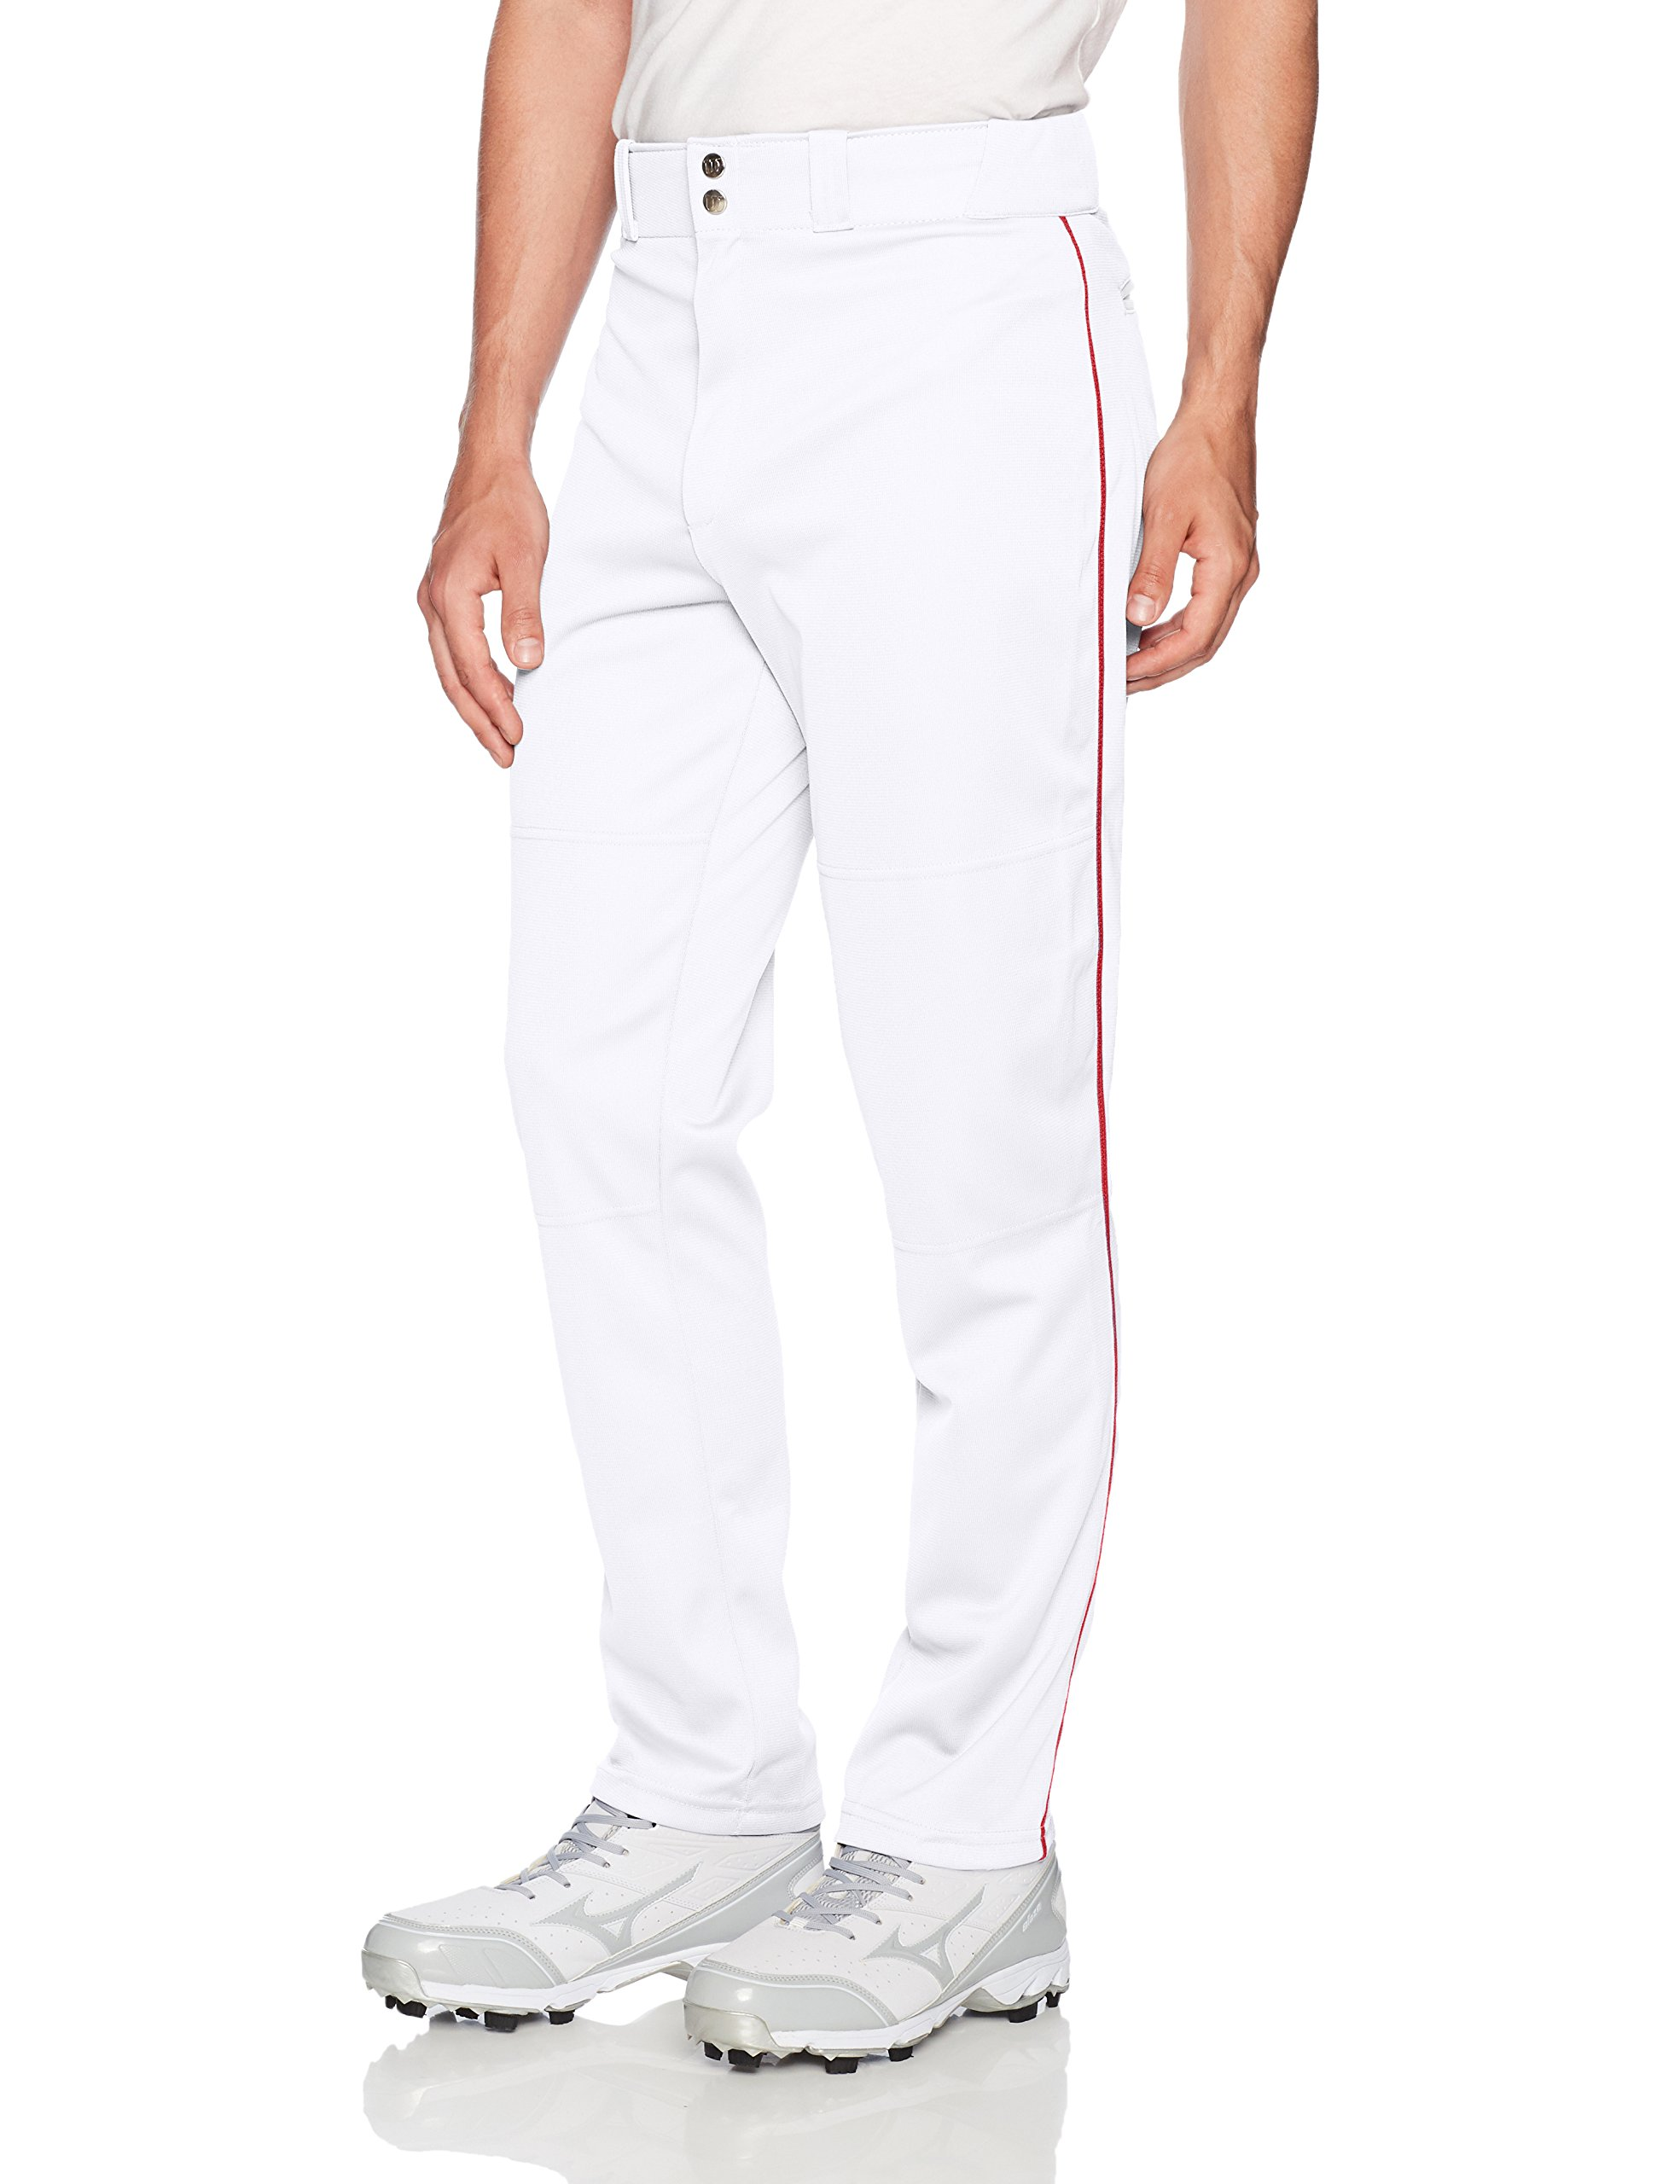 Wilson Men's Classic Relaxed Fit Piped Baseball Pant, White/Scarlet, Small by Wilson